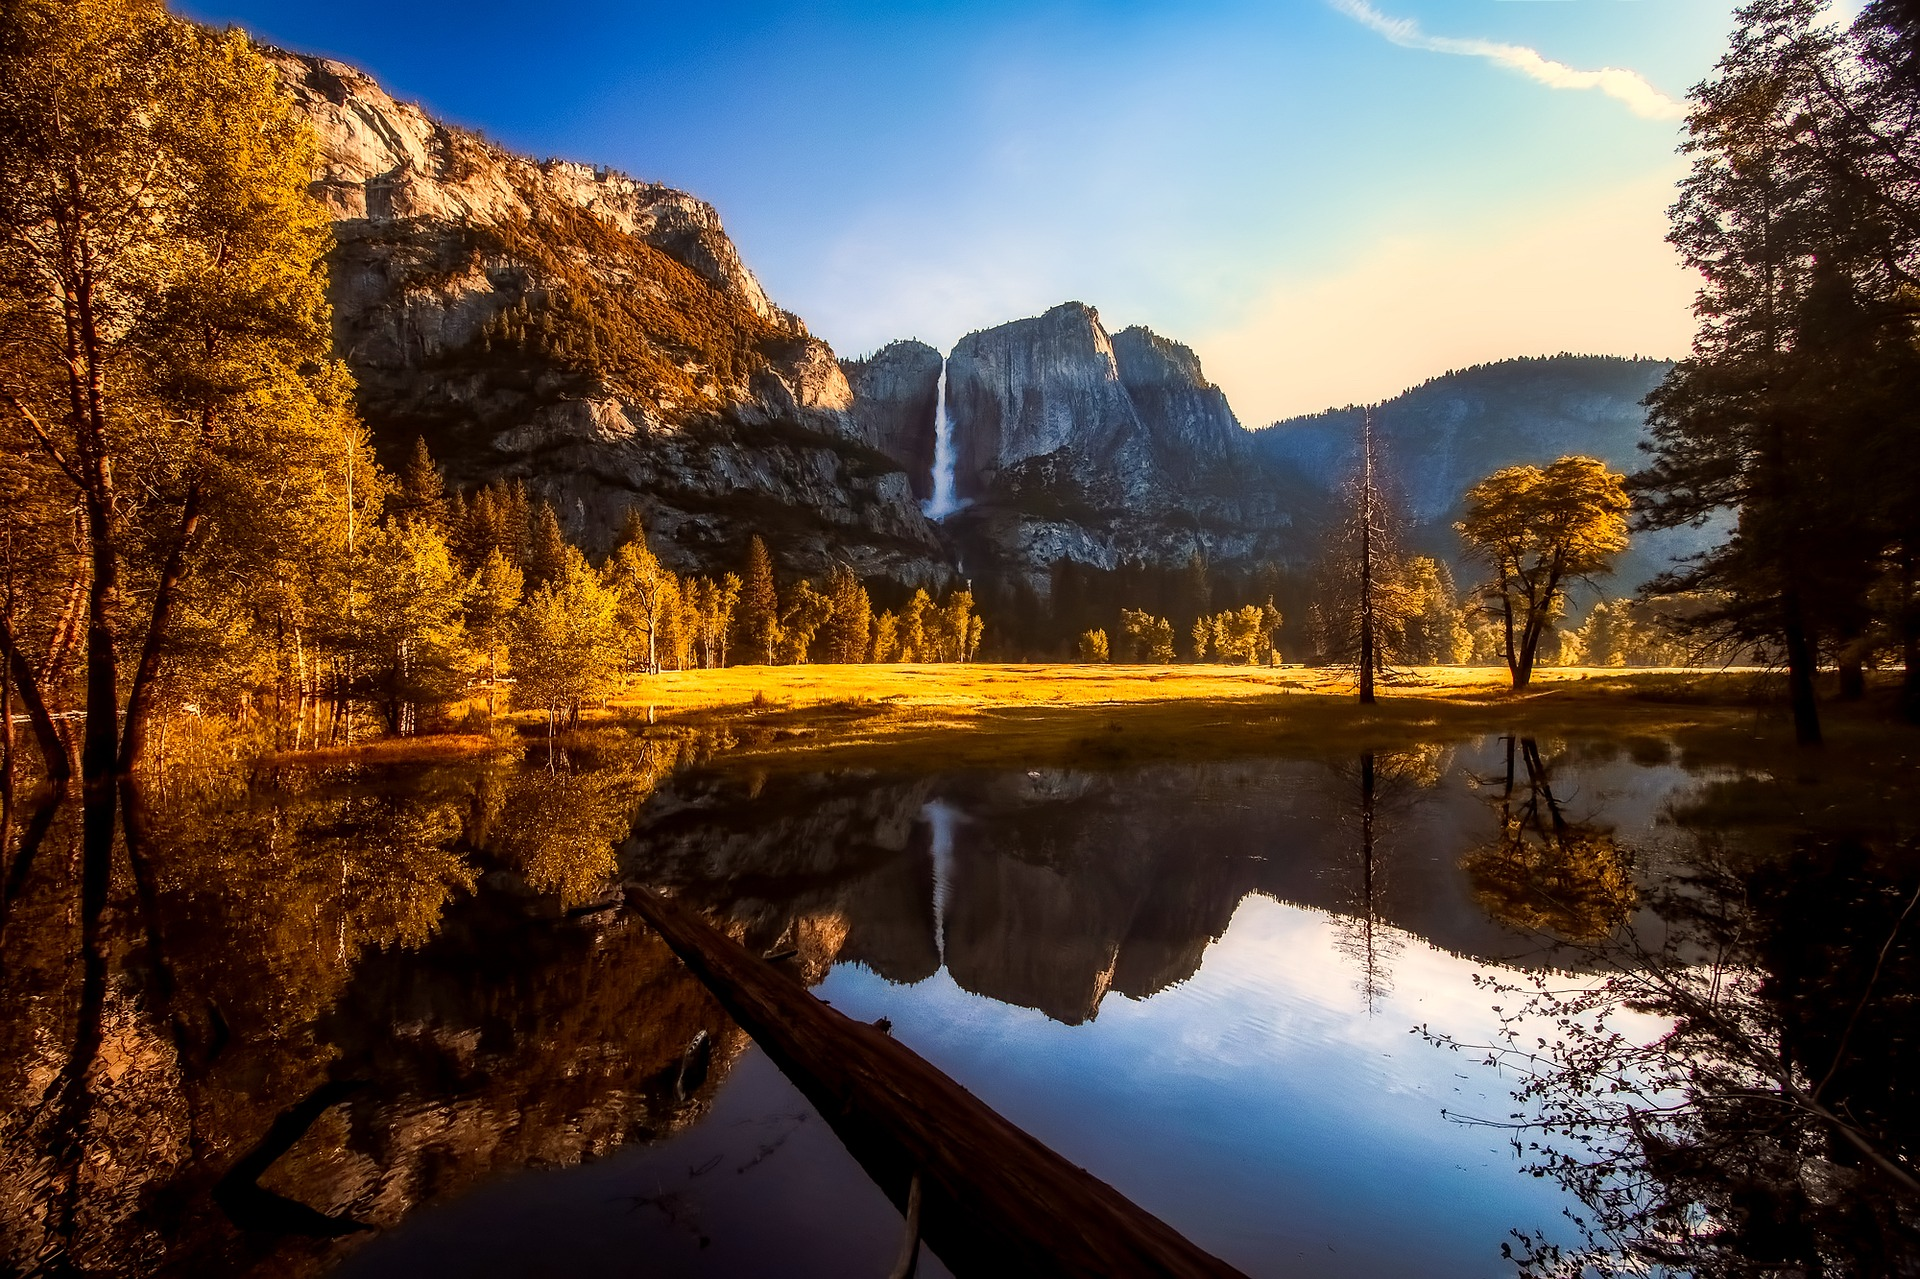 Northern California | Yosemite National Park, California, USA